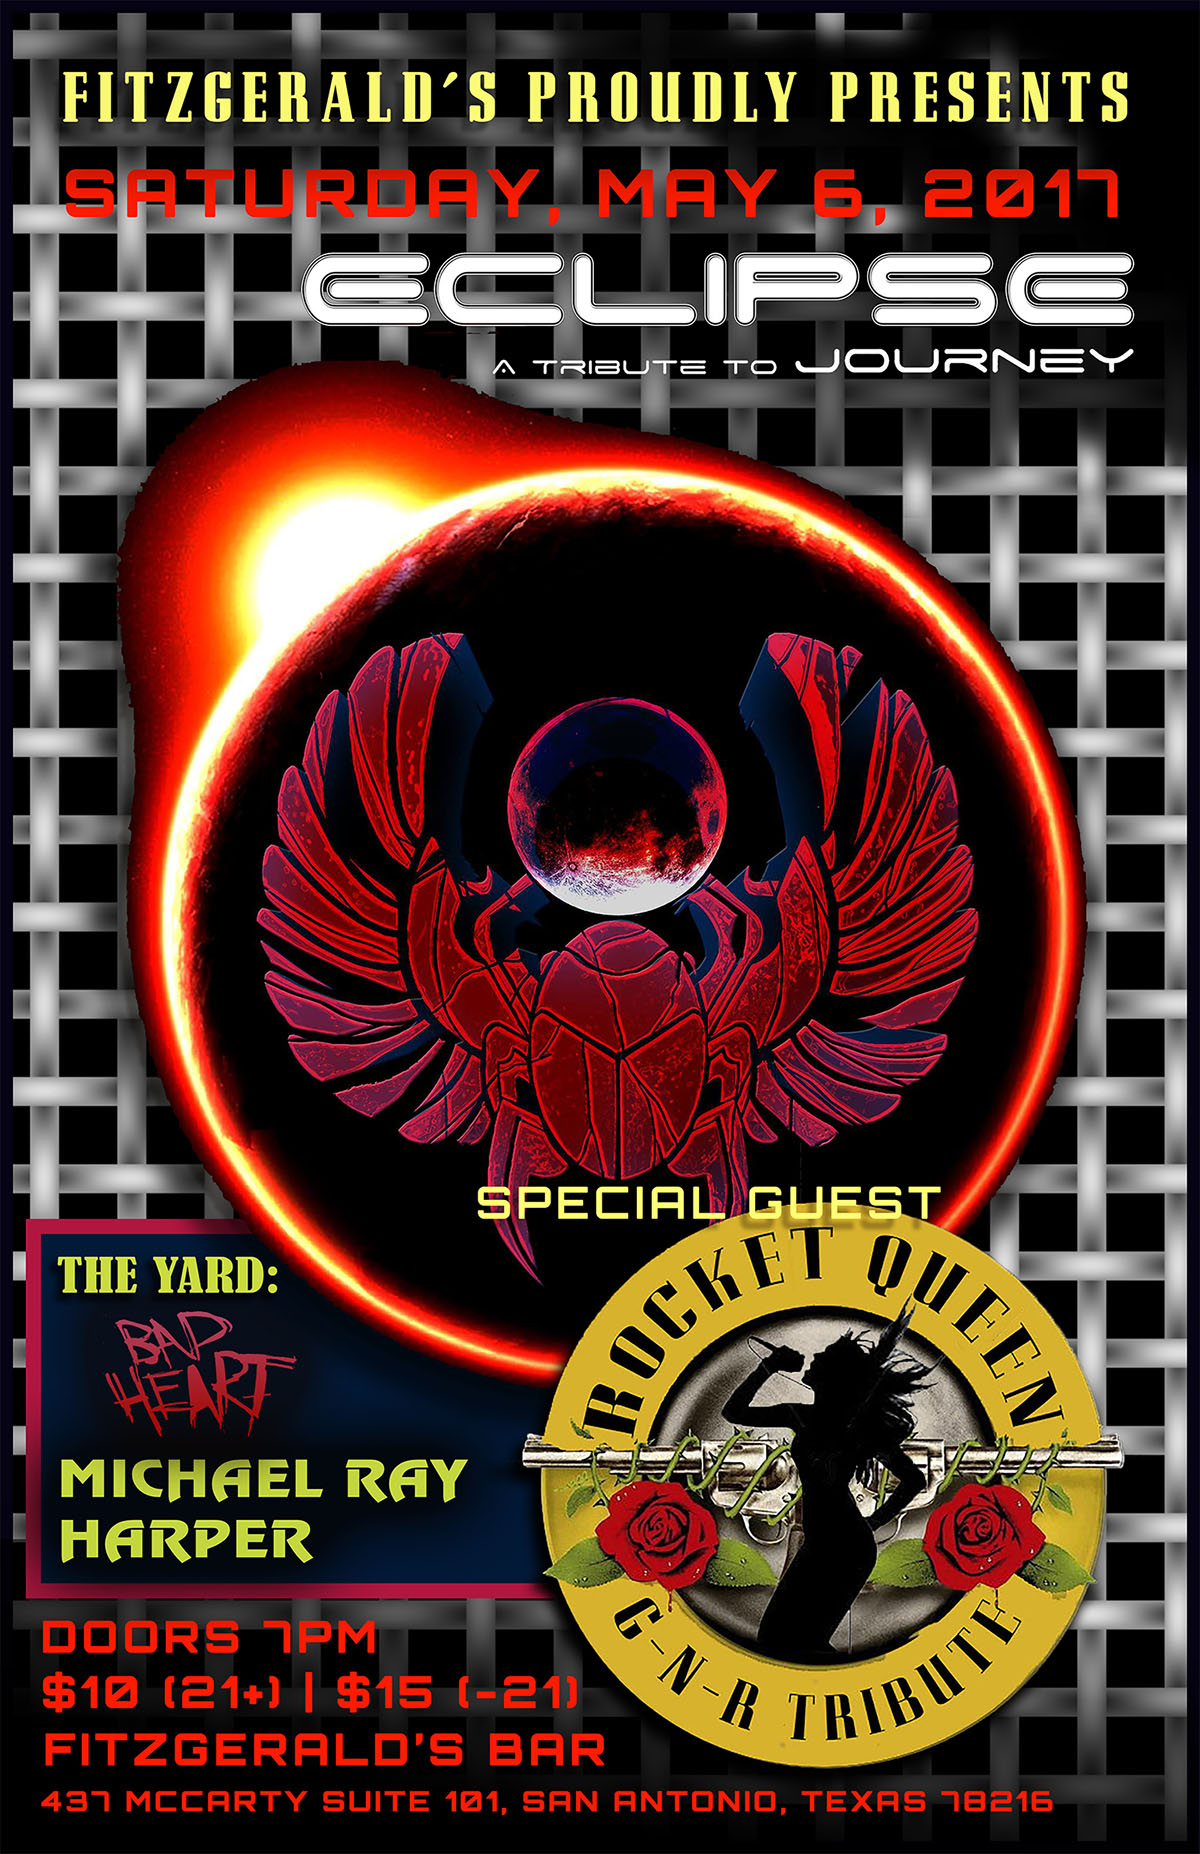 Journey Eclipse and Rocket Queen Guns N' Roses